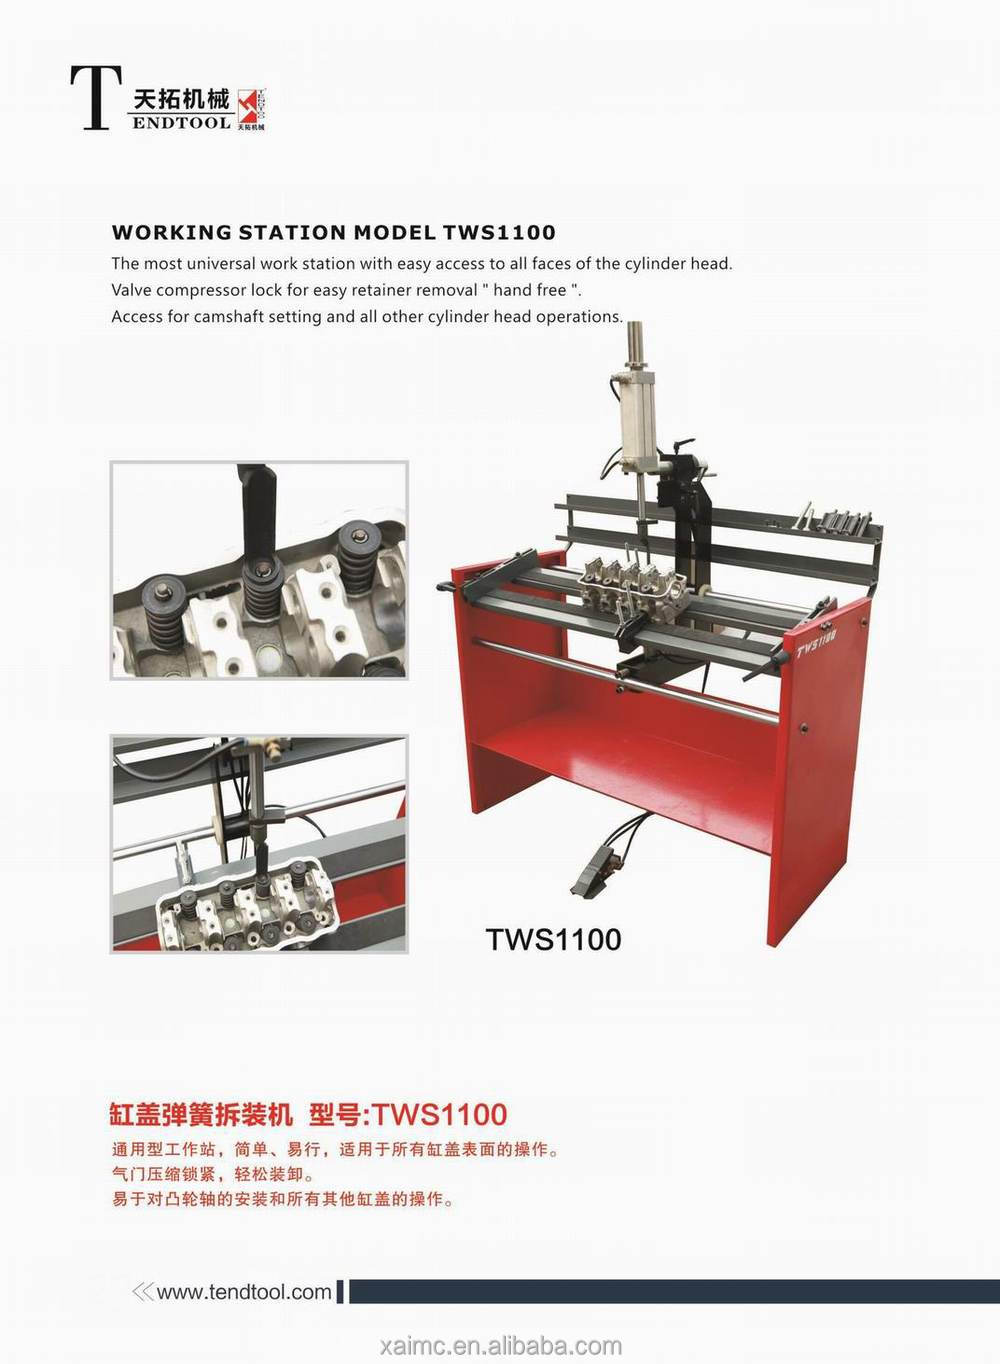 Universal workstation TWS1100 for engine rebuild Serdi type